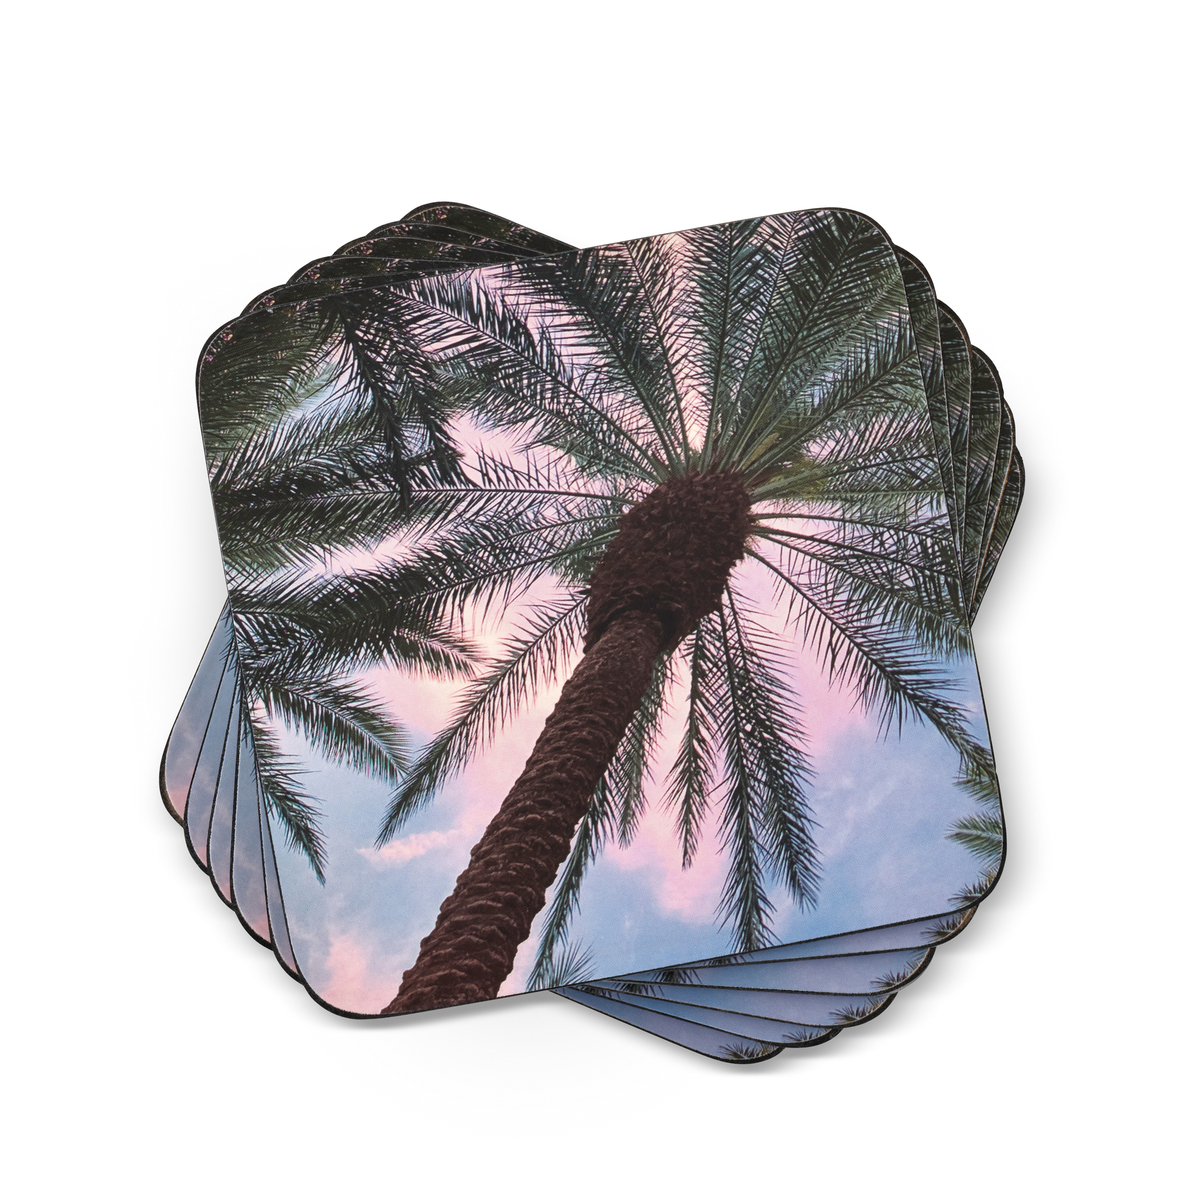 Pimpernel Tropical Coasters Set of 6 image number 0